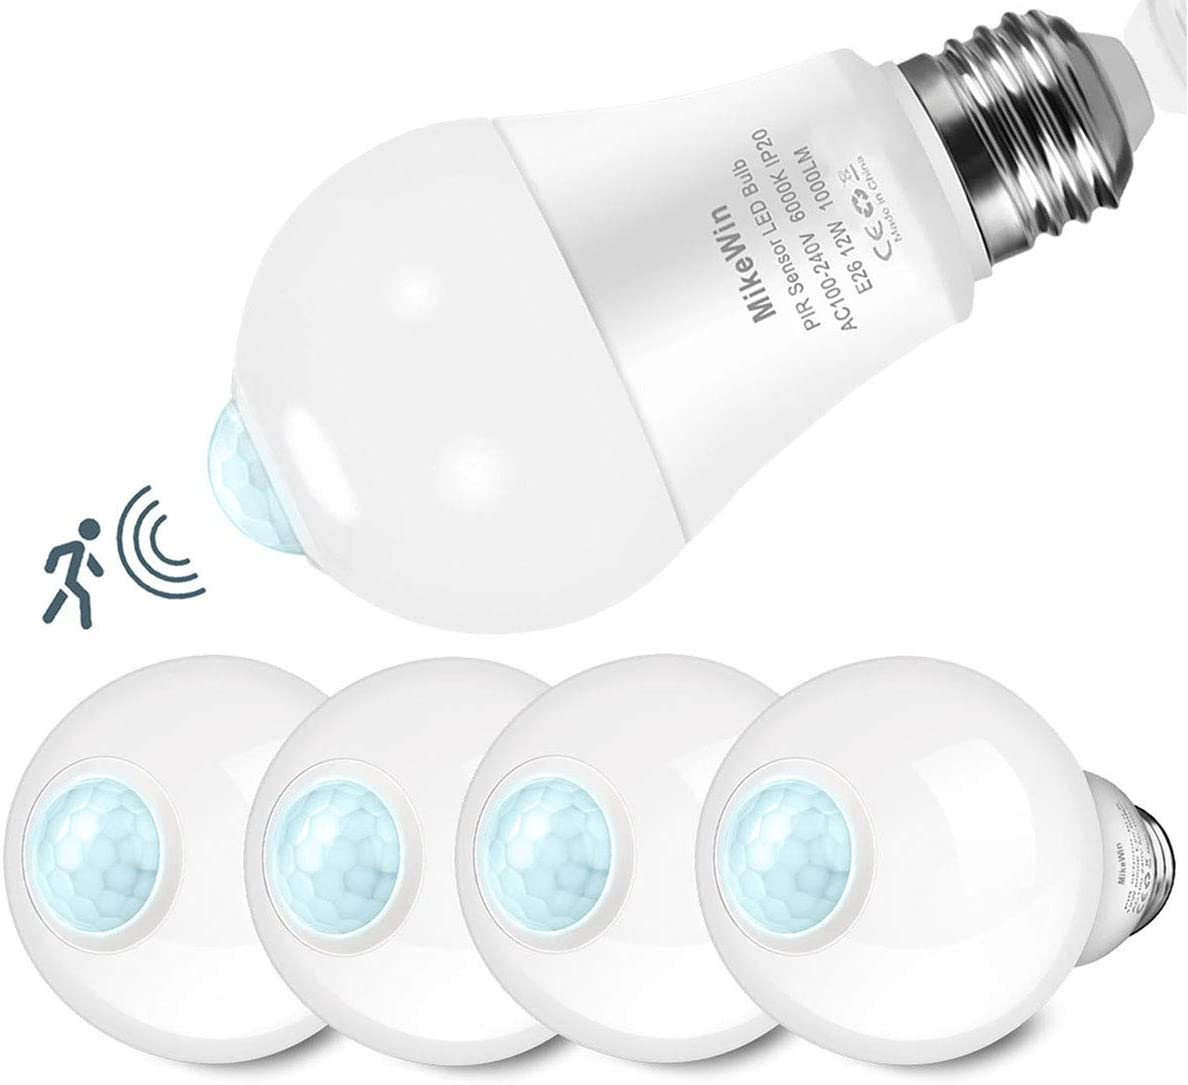 MikeWin Motion Sensor Light Bulbs Outdoor 4 Packs 12W(100W Equivalent) Security LED Bulb, Indoor E26, A19, 6000K Daylight Dusk to Dawn Bulb for Garage Front Door Porch Stairs Hallway